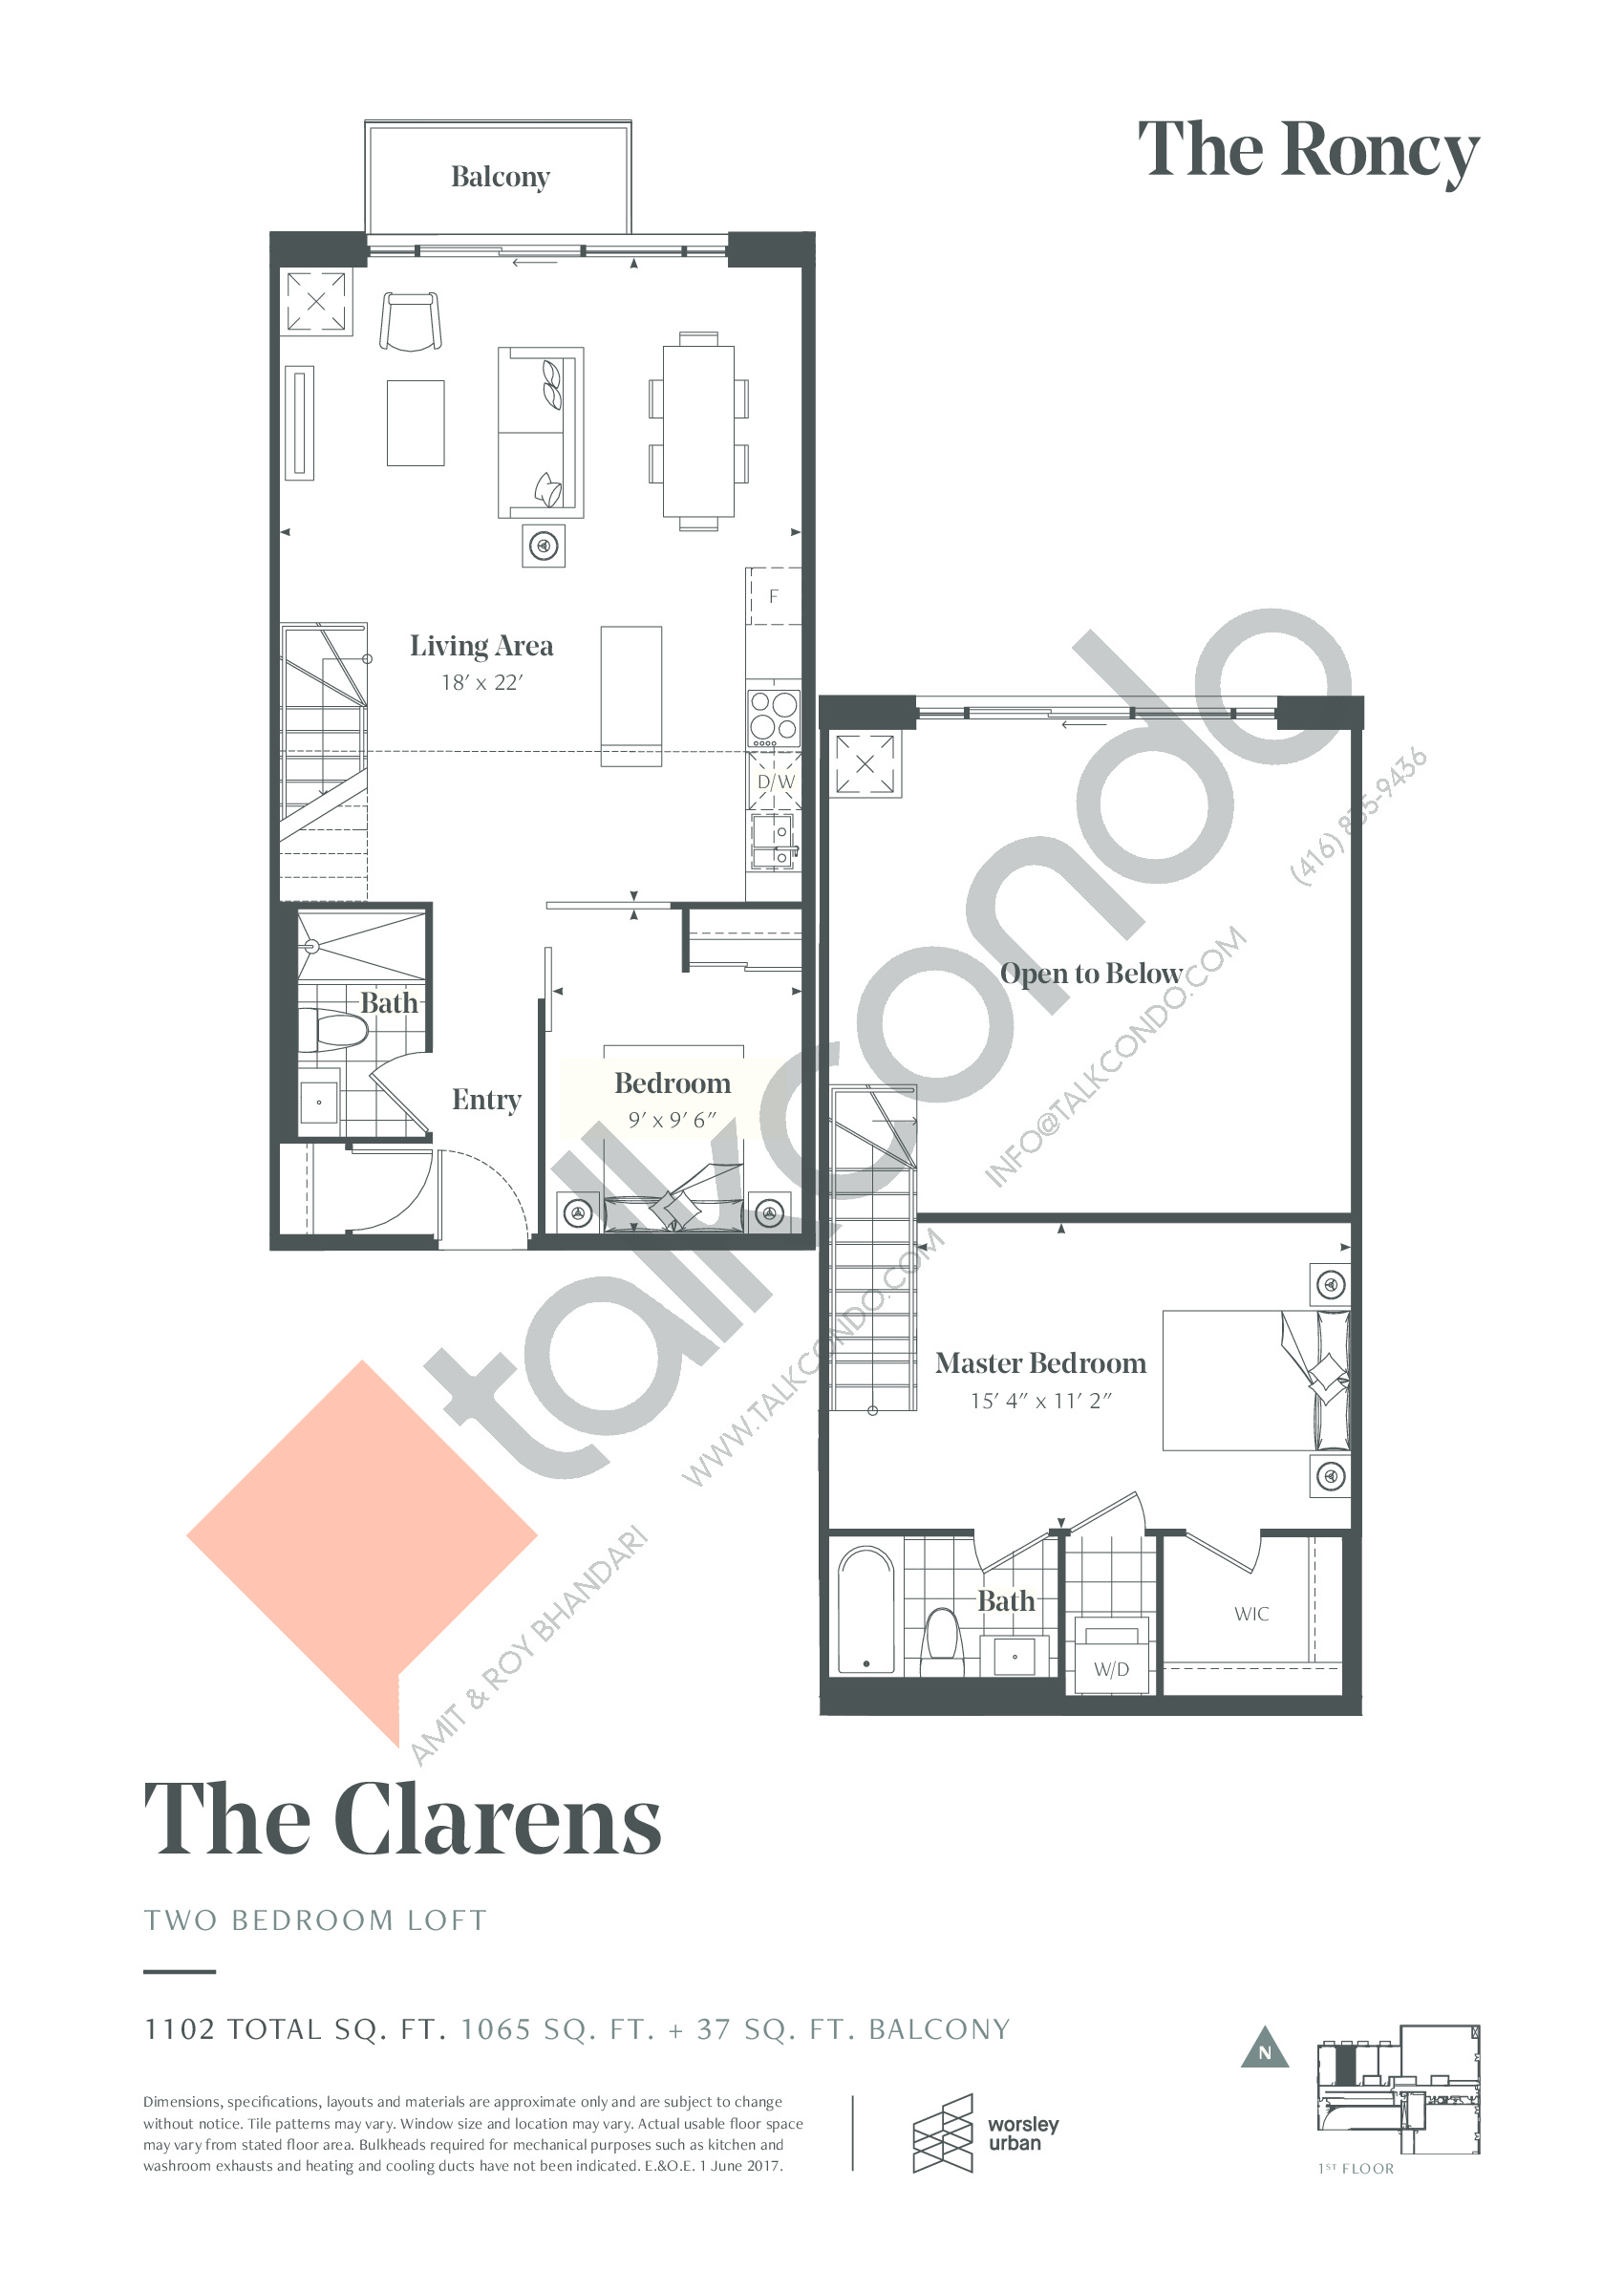 The Clarens Floor Plan at The Roncy Condos - 1065 sq.ft